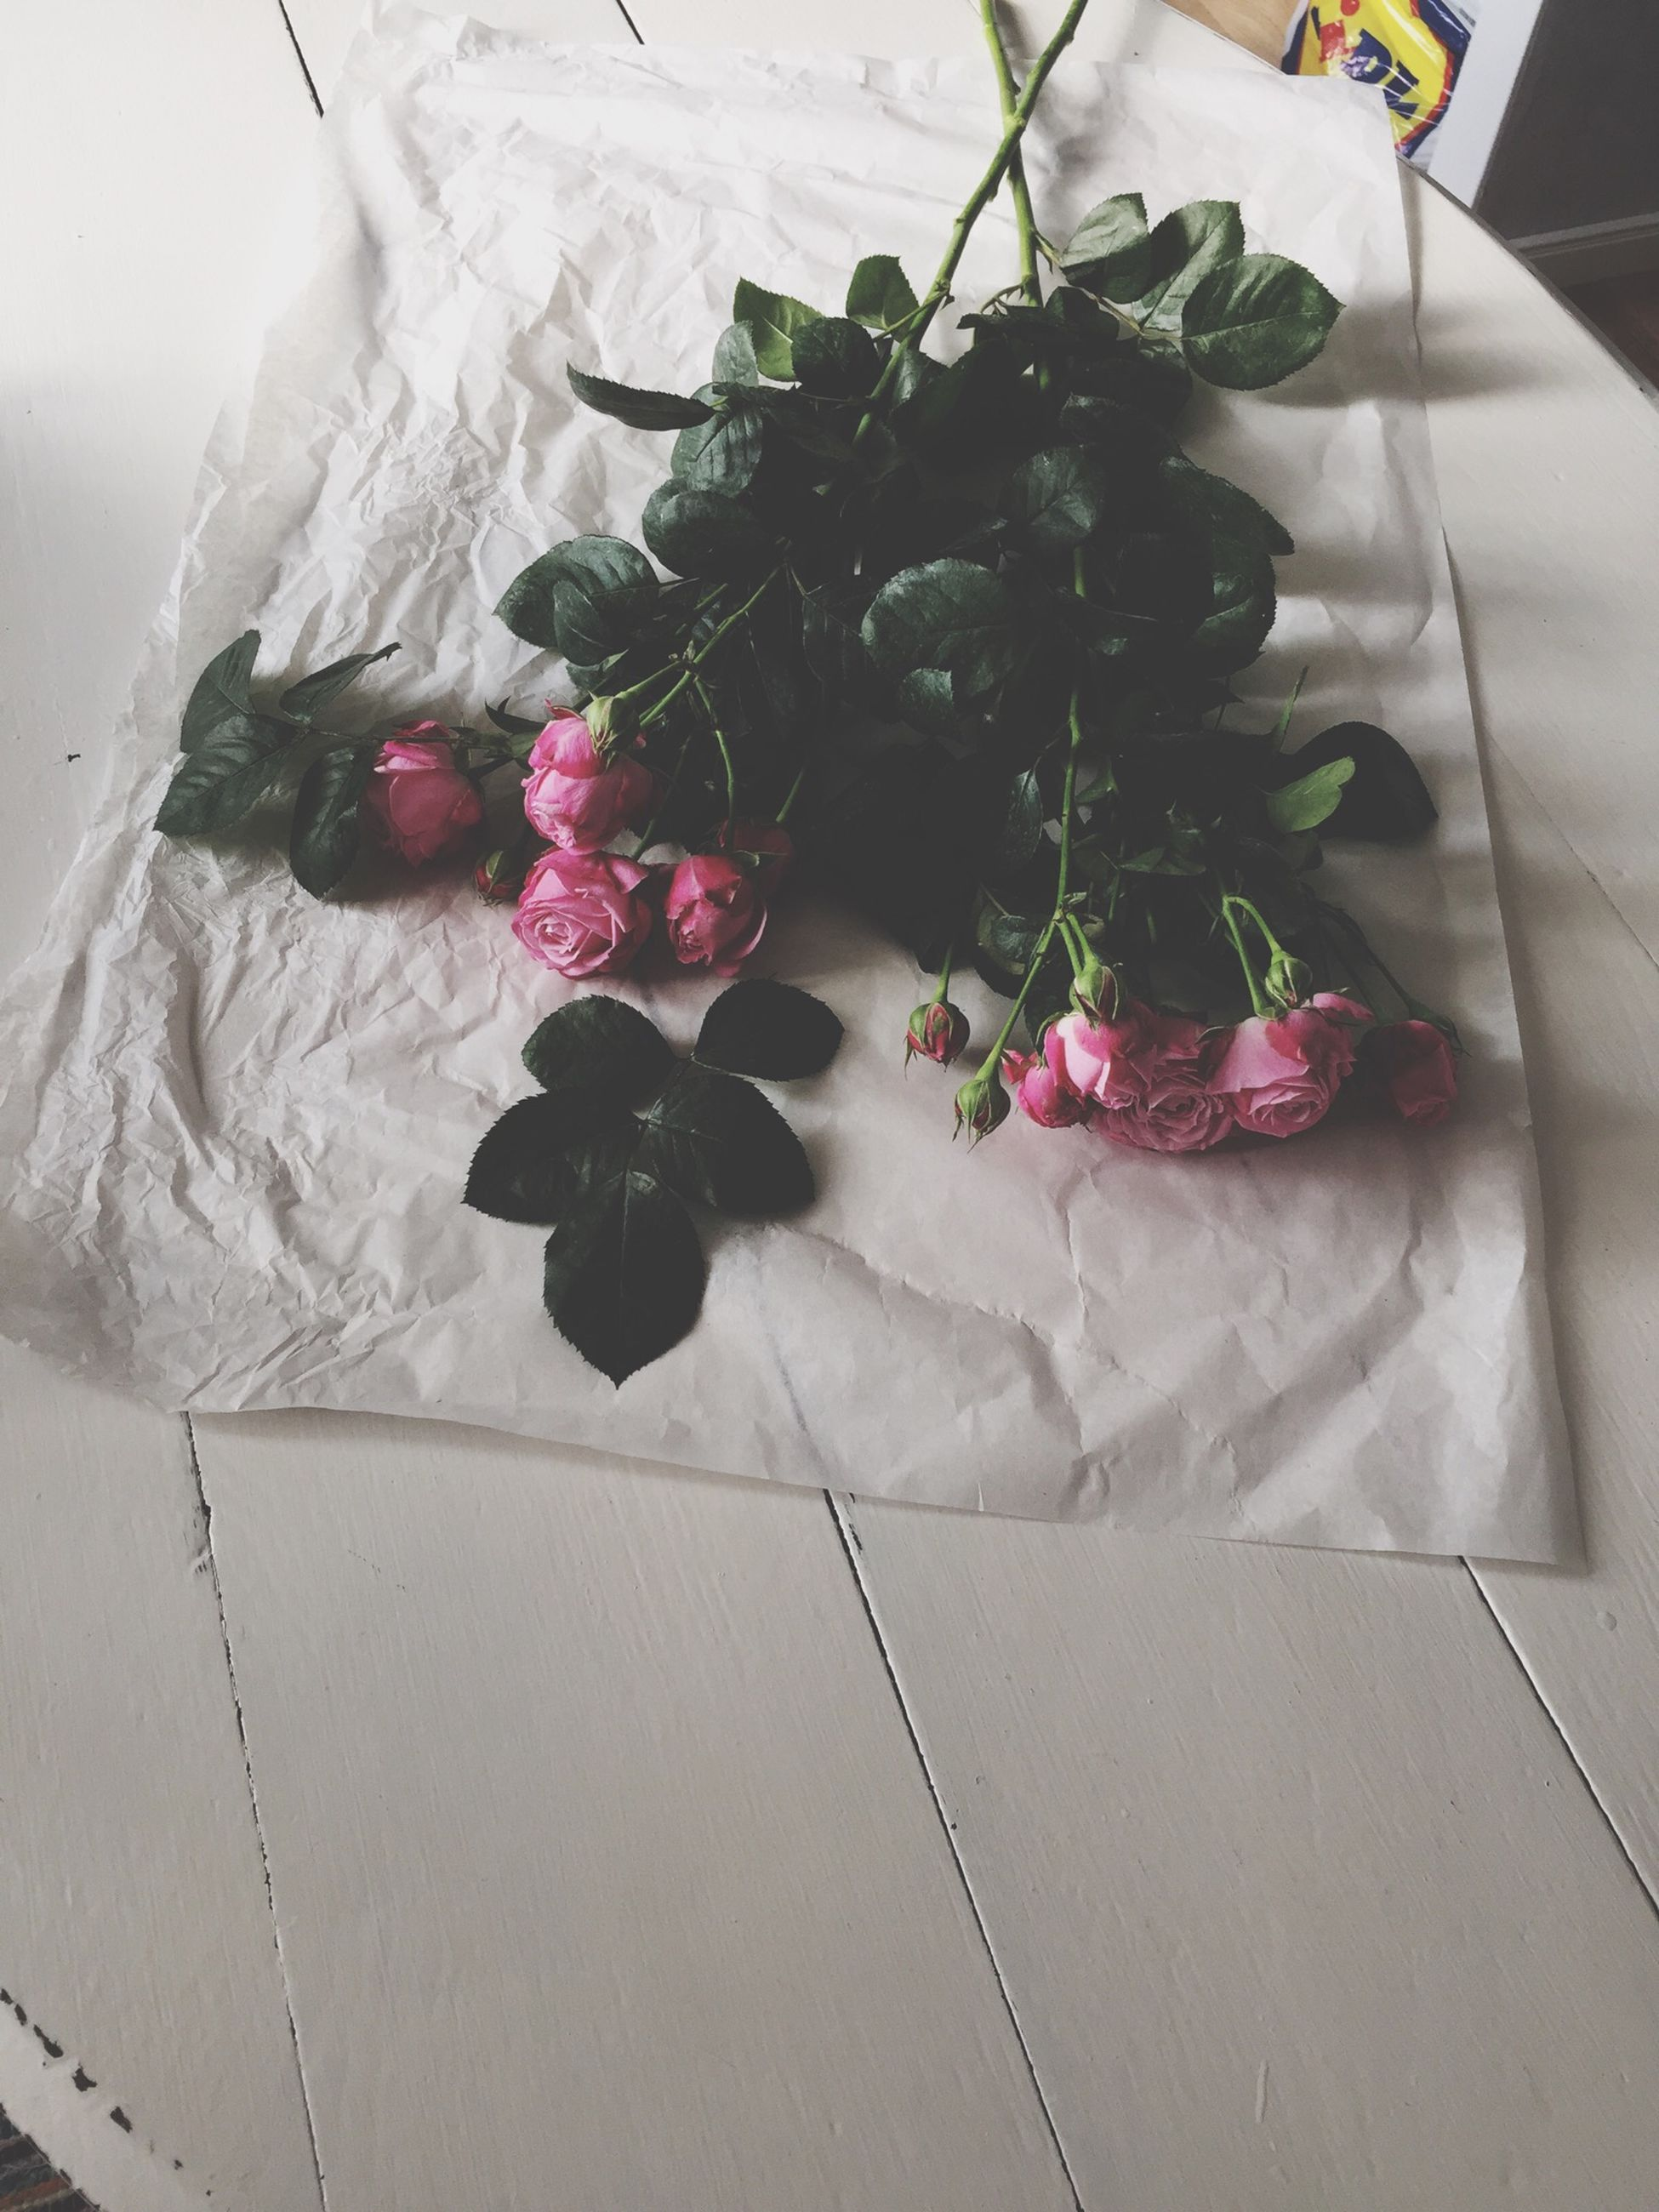 flower, indoors, high angle view, plant, potted plant, decoration, wall - building feature, growth, day, no people, rose - flower, hanging, nature, freshness, sunlight, fragility, close-up, shadow, white color